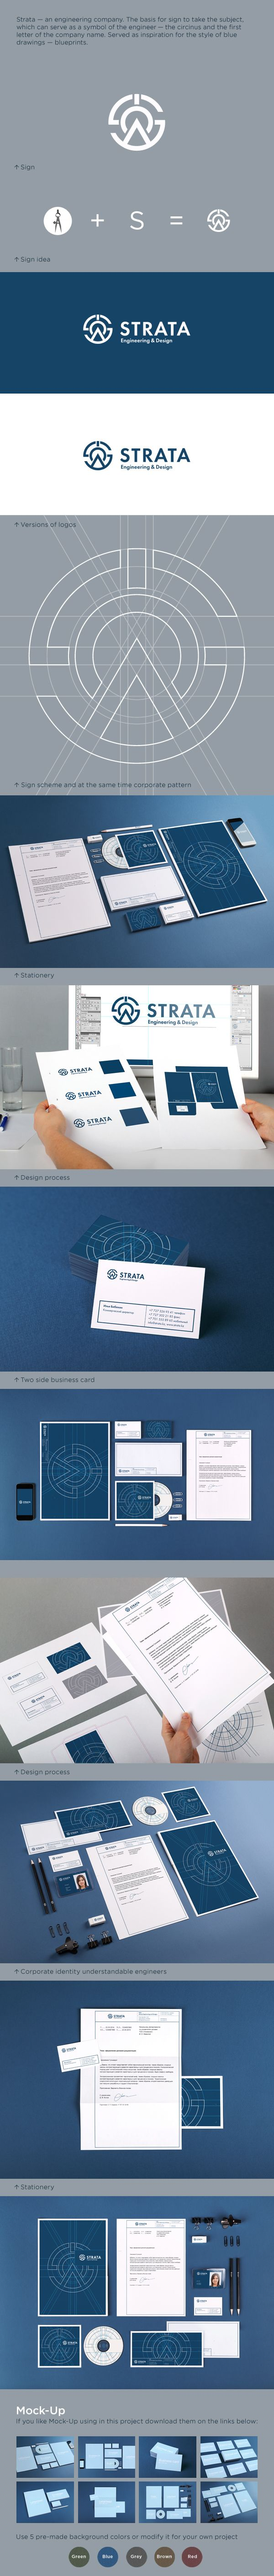 Free Corporate Identity ‪PSD‬ ‪MockUp‬ helps you showcase your corporate design presentations in a professional way. Go ahead and download them all for ‪FREE‬!